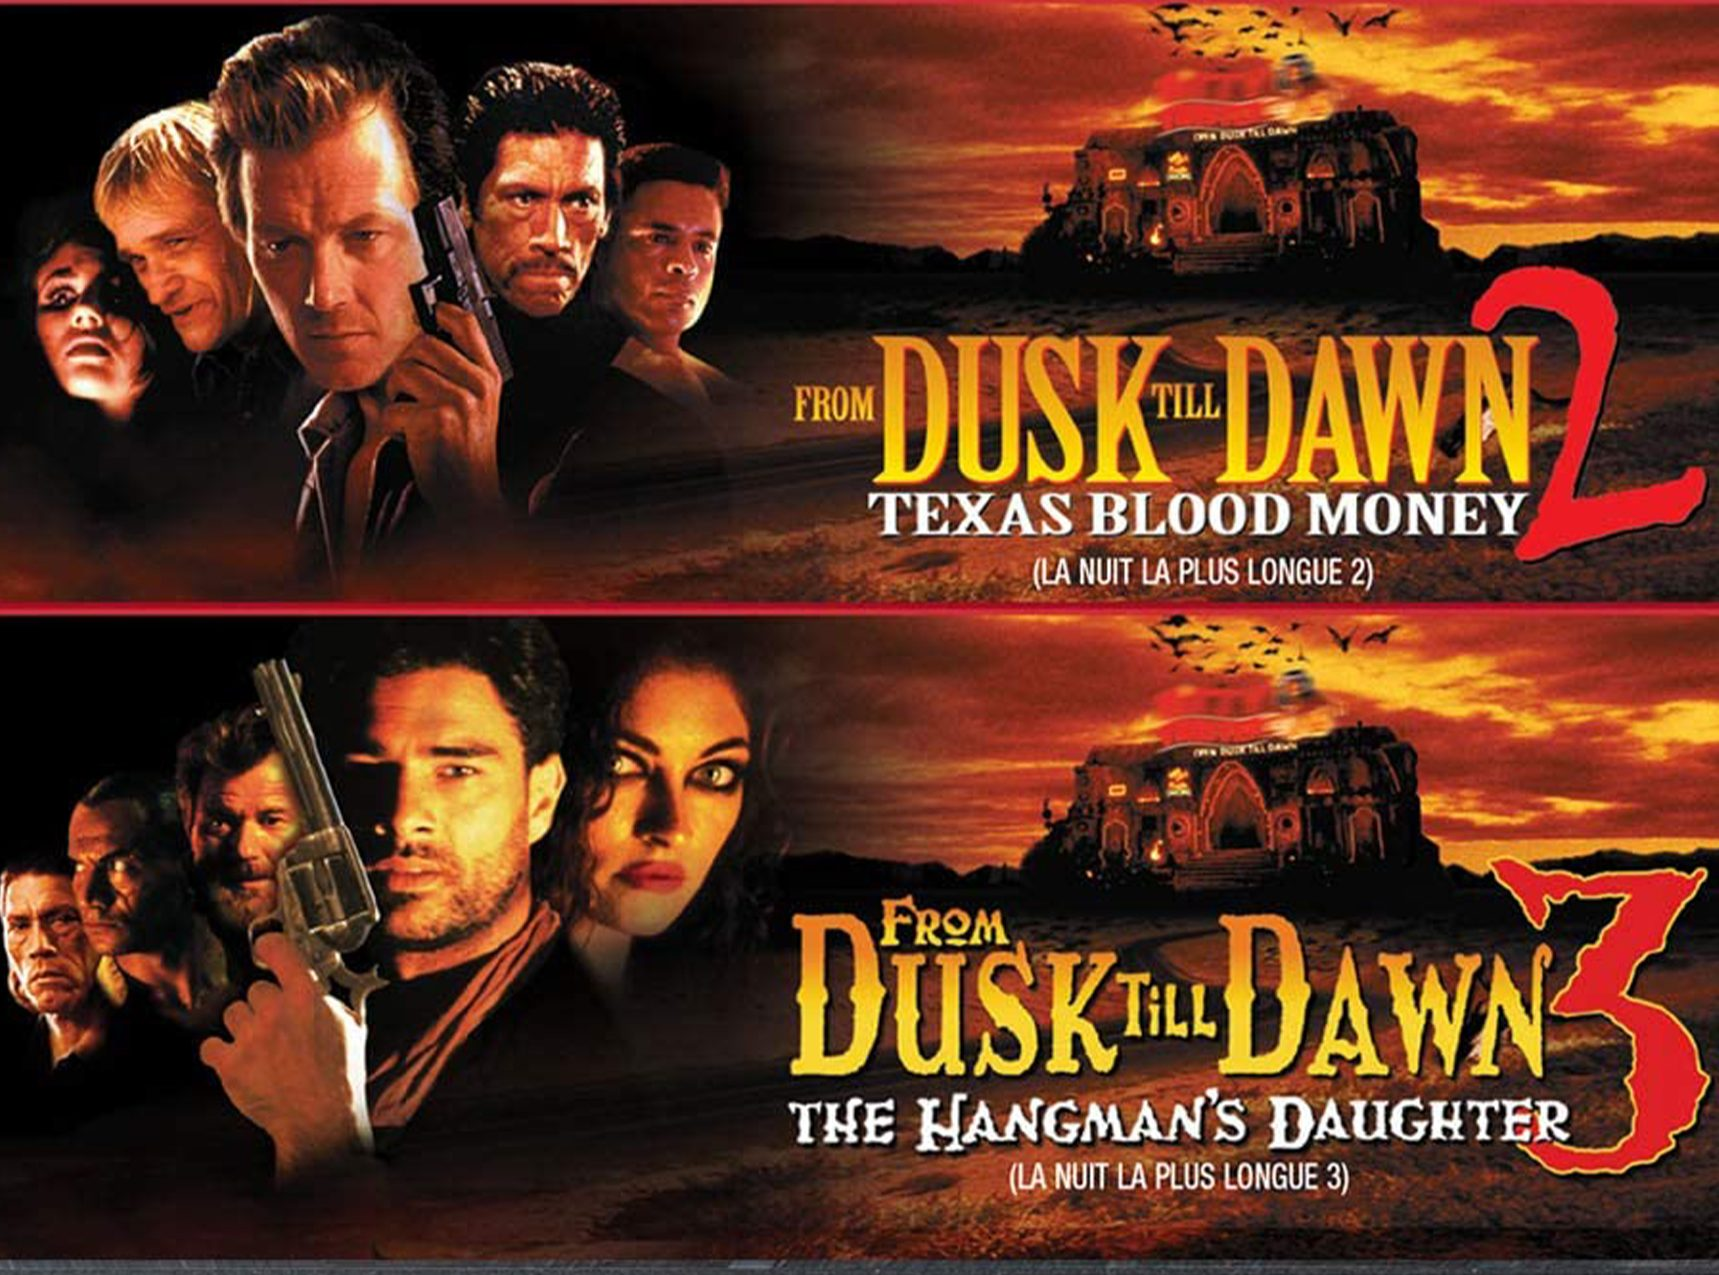 FromDuskTillDawnSequels e1621424407411 Embarrassing Sequels To Great 90s Movies